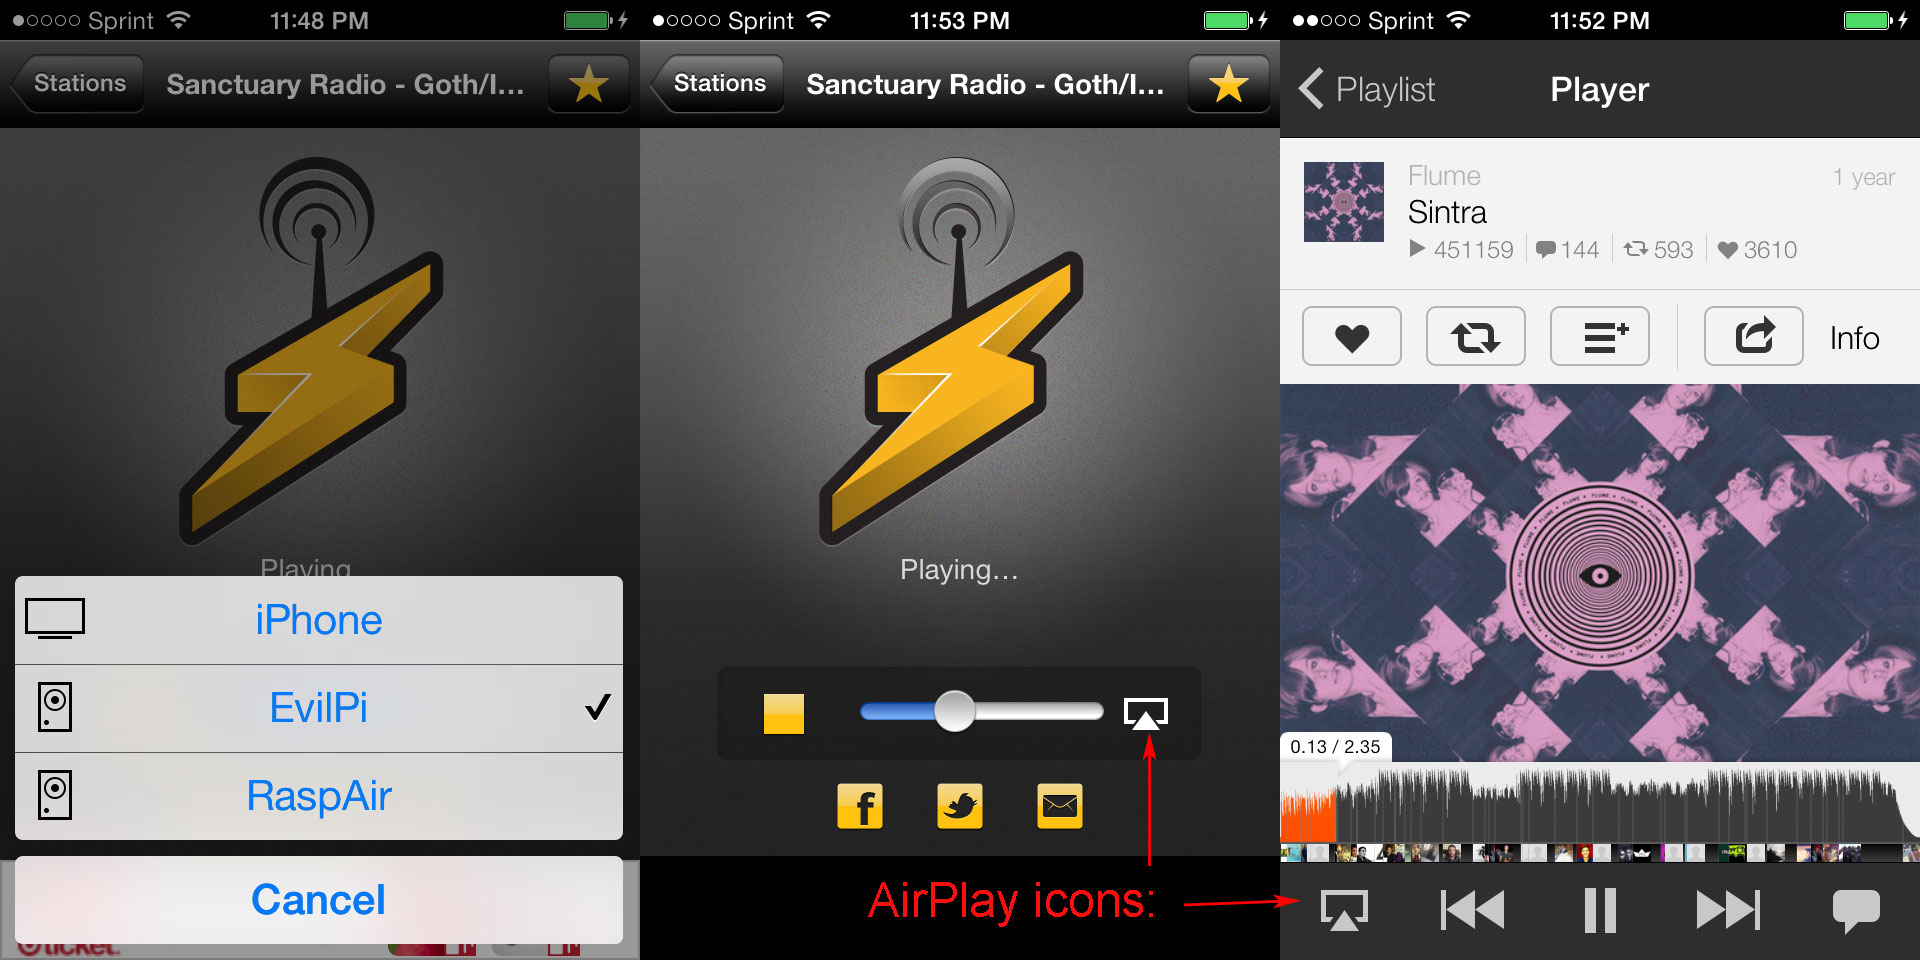 AirPlay icon location on IOS7